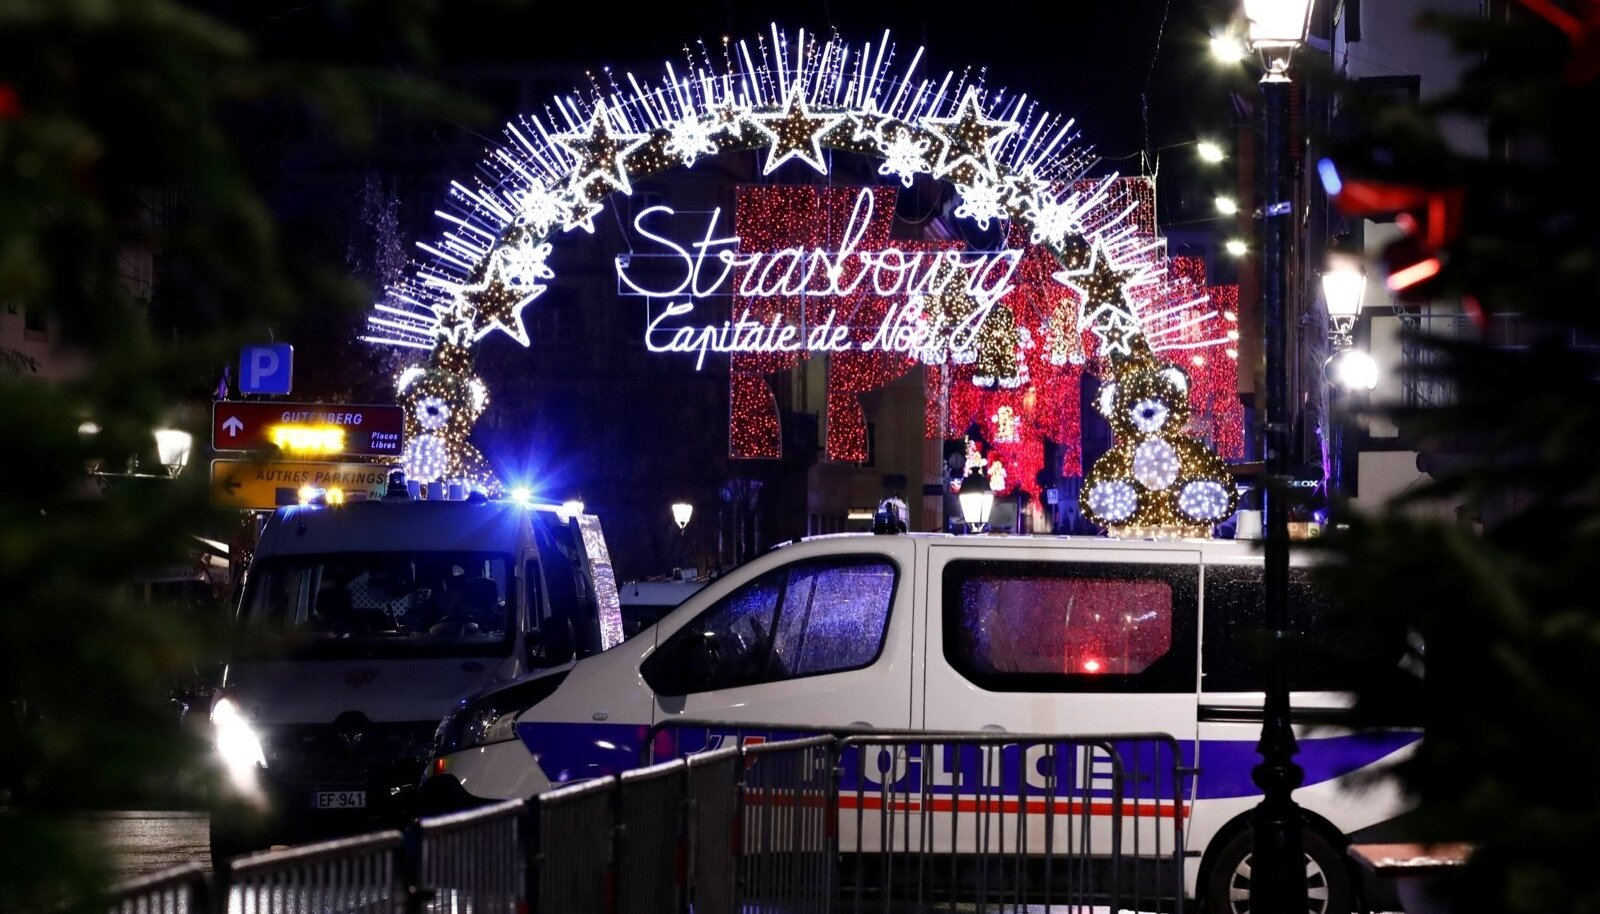 Police secures area where a suspect is sought after a shooting in Strasbourg